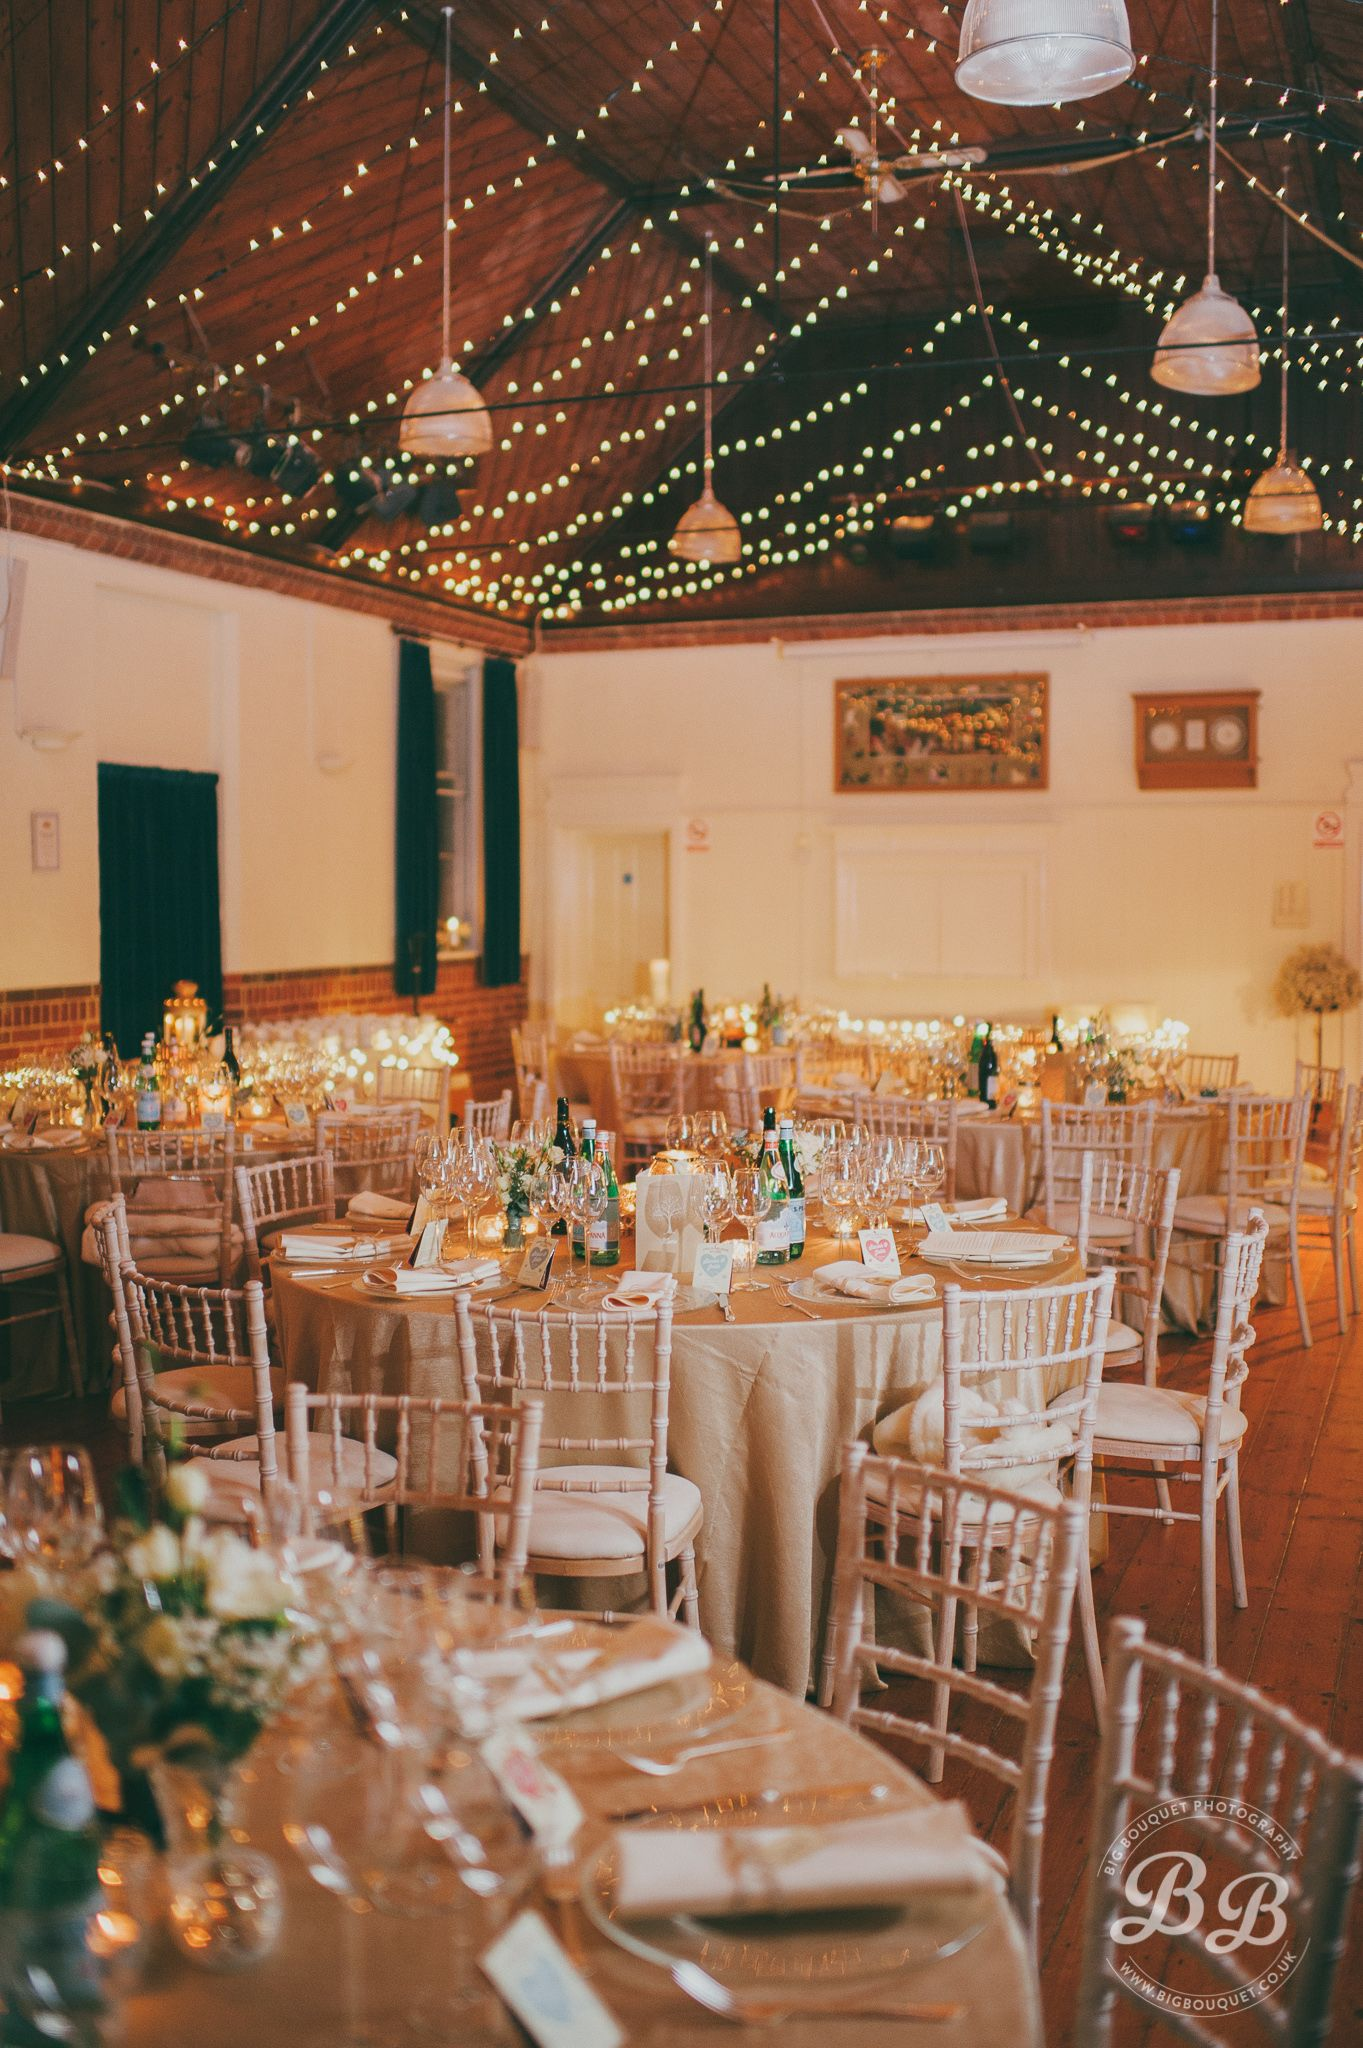 Light ceiling garlands to brighten up a village hall for winters ideas and inspiration for creating a beautiful village hall village fete styled wedding reception light ceiling garlands to brighten up a village hall junglespirit Choice Image